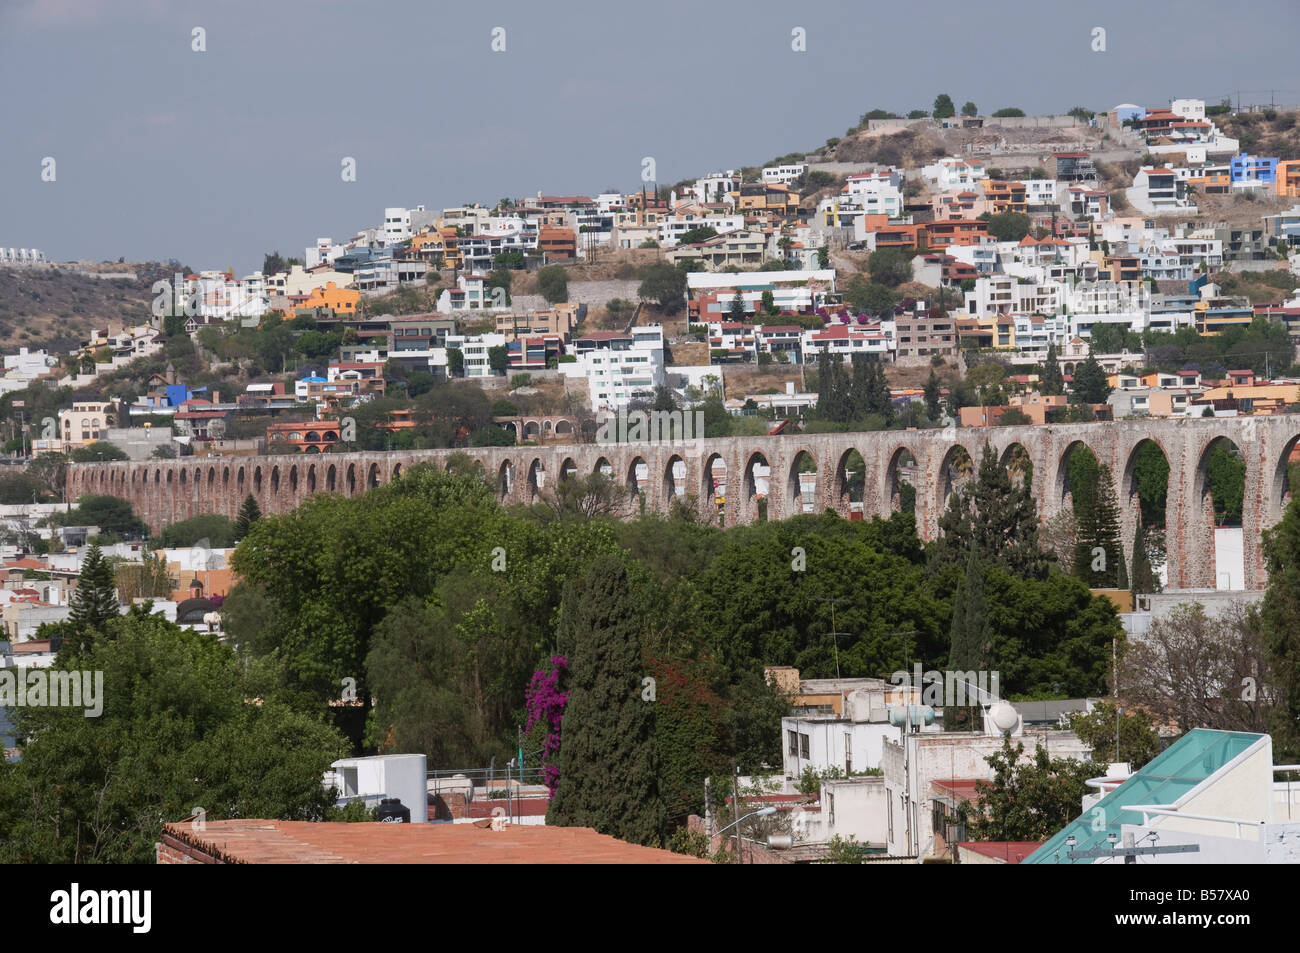 Aqueduct, to bring water from nearby springs to Santiago de Queretaro, Queretaro, Queretaro State, Mexico - Stock Image